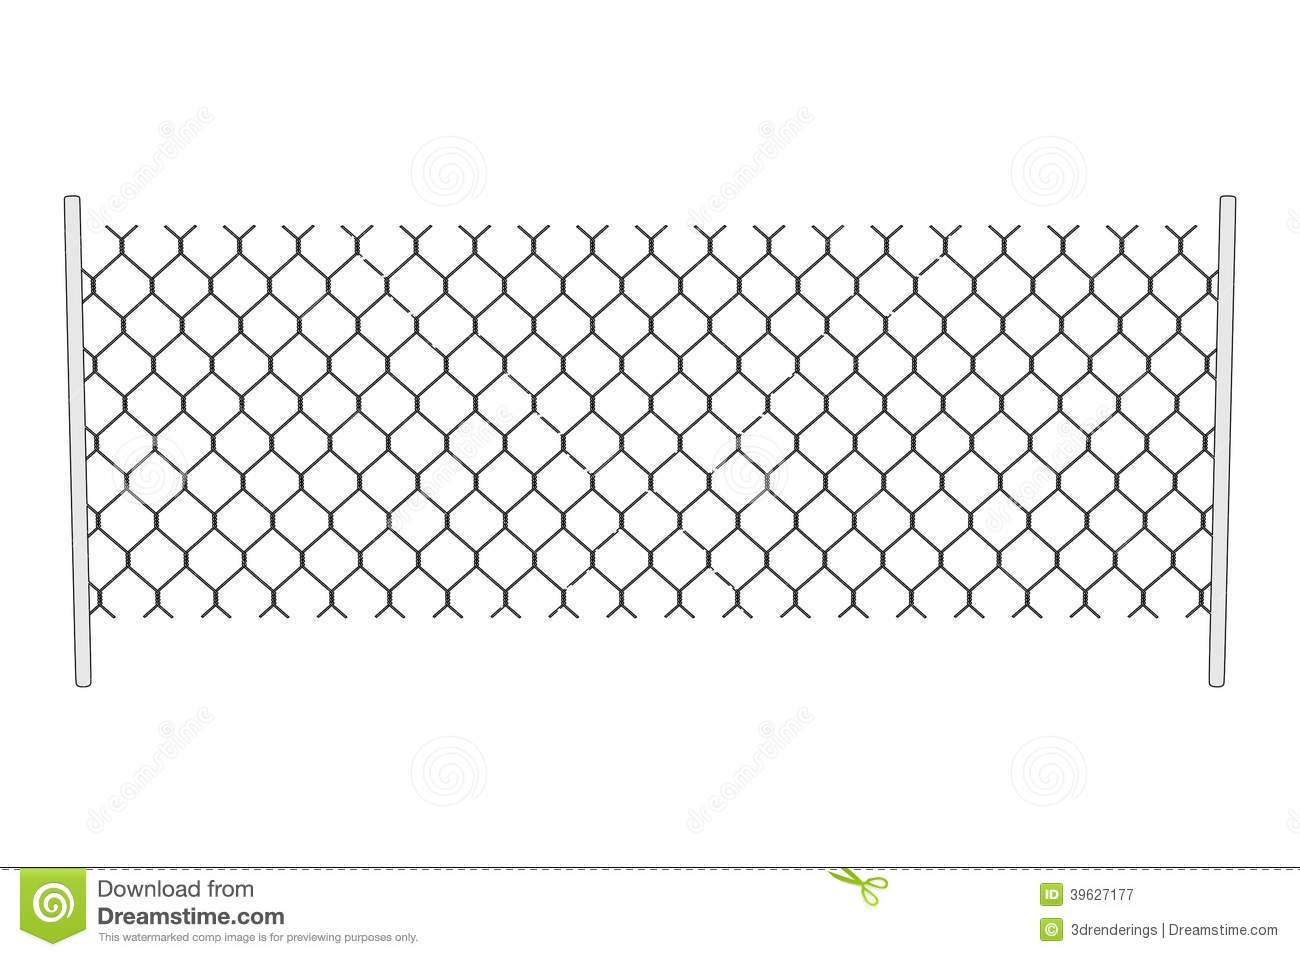 Image of chain fence stock illustration